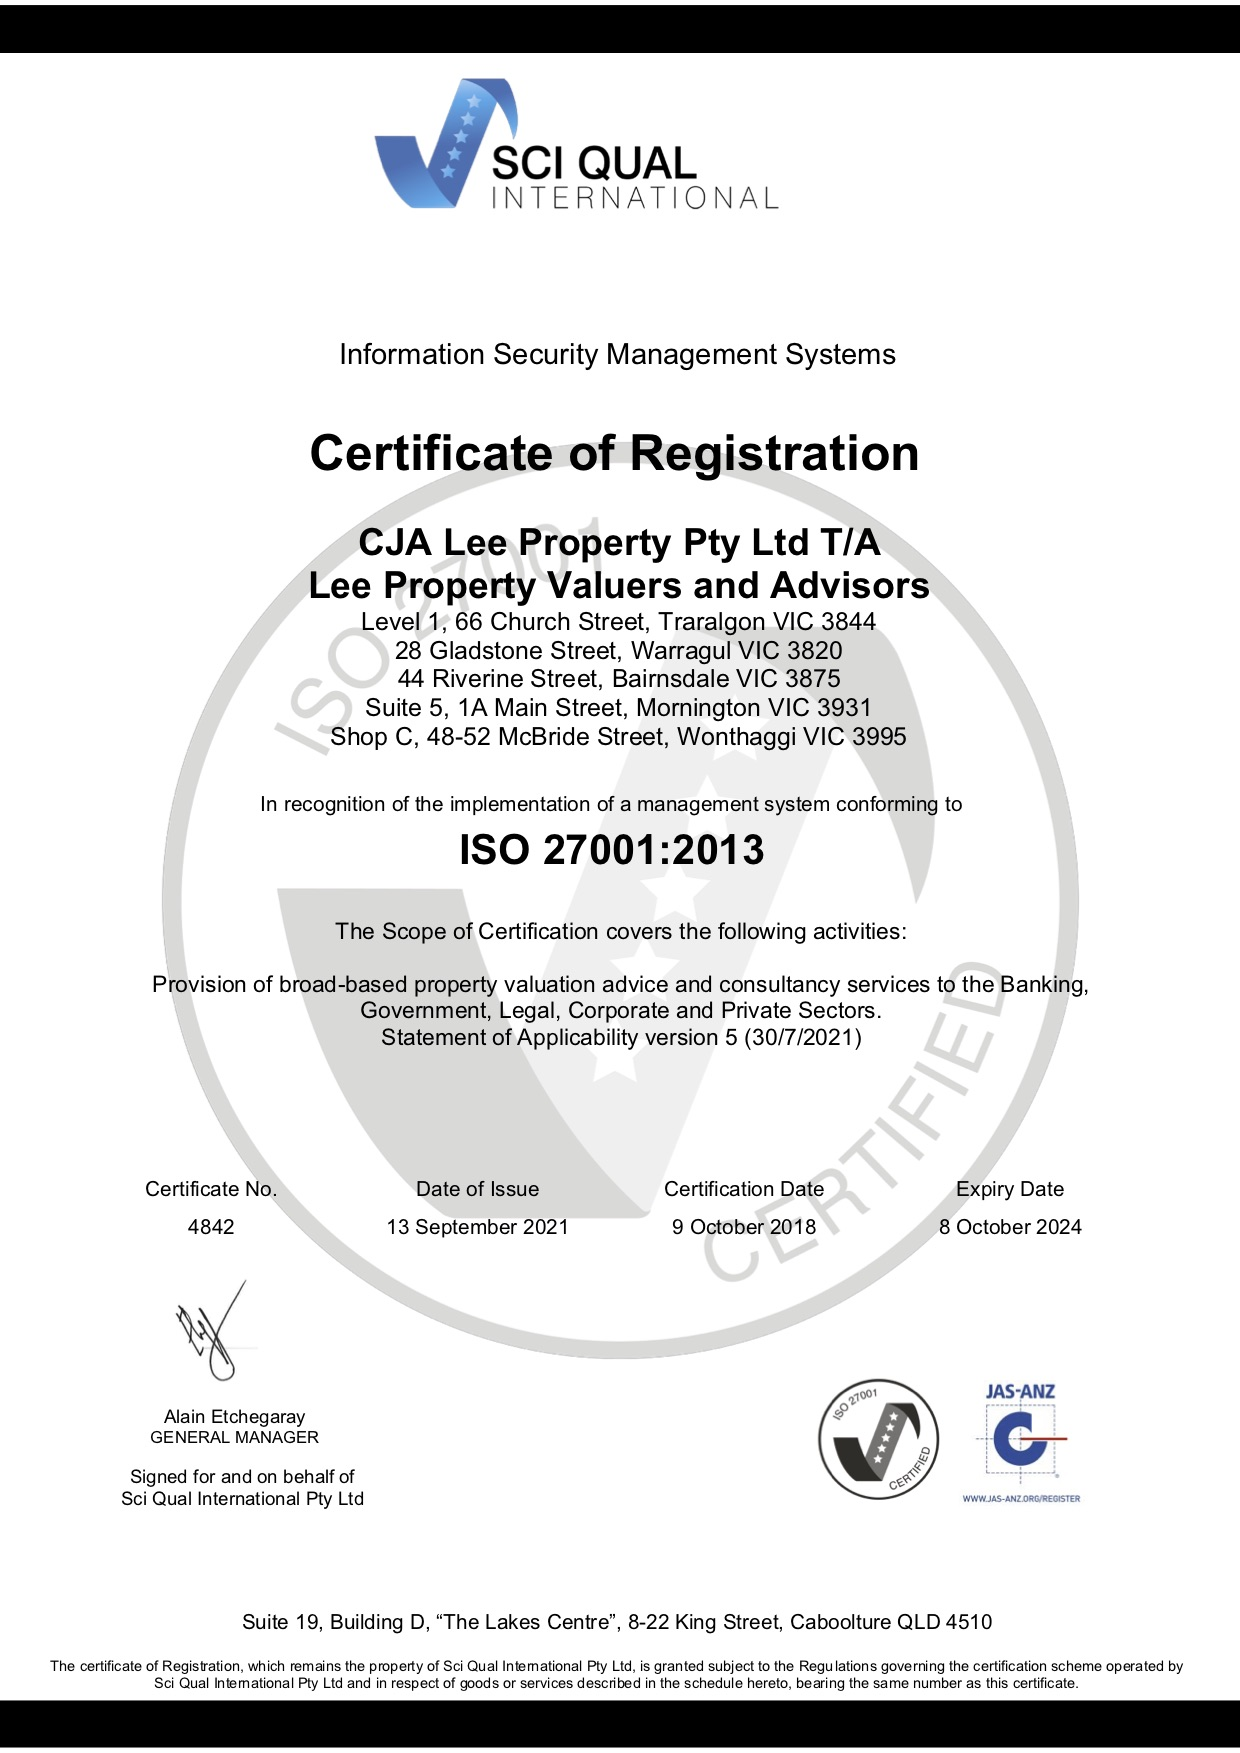 Lee Property Valuers ISMS ISO27001 eCert 2021